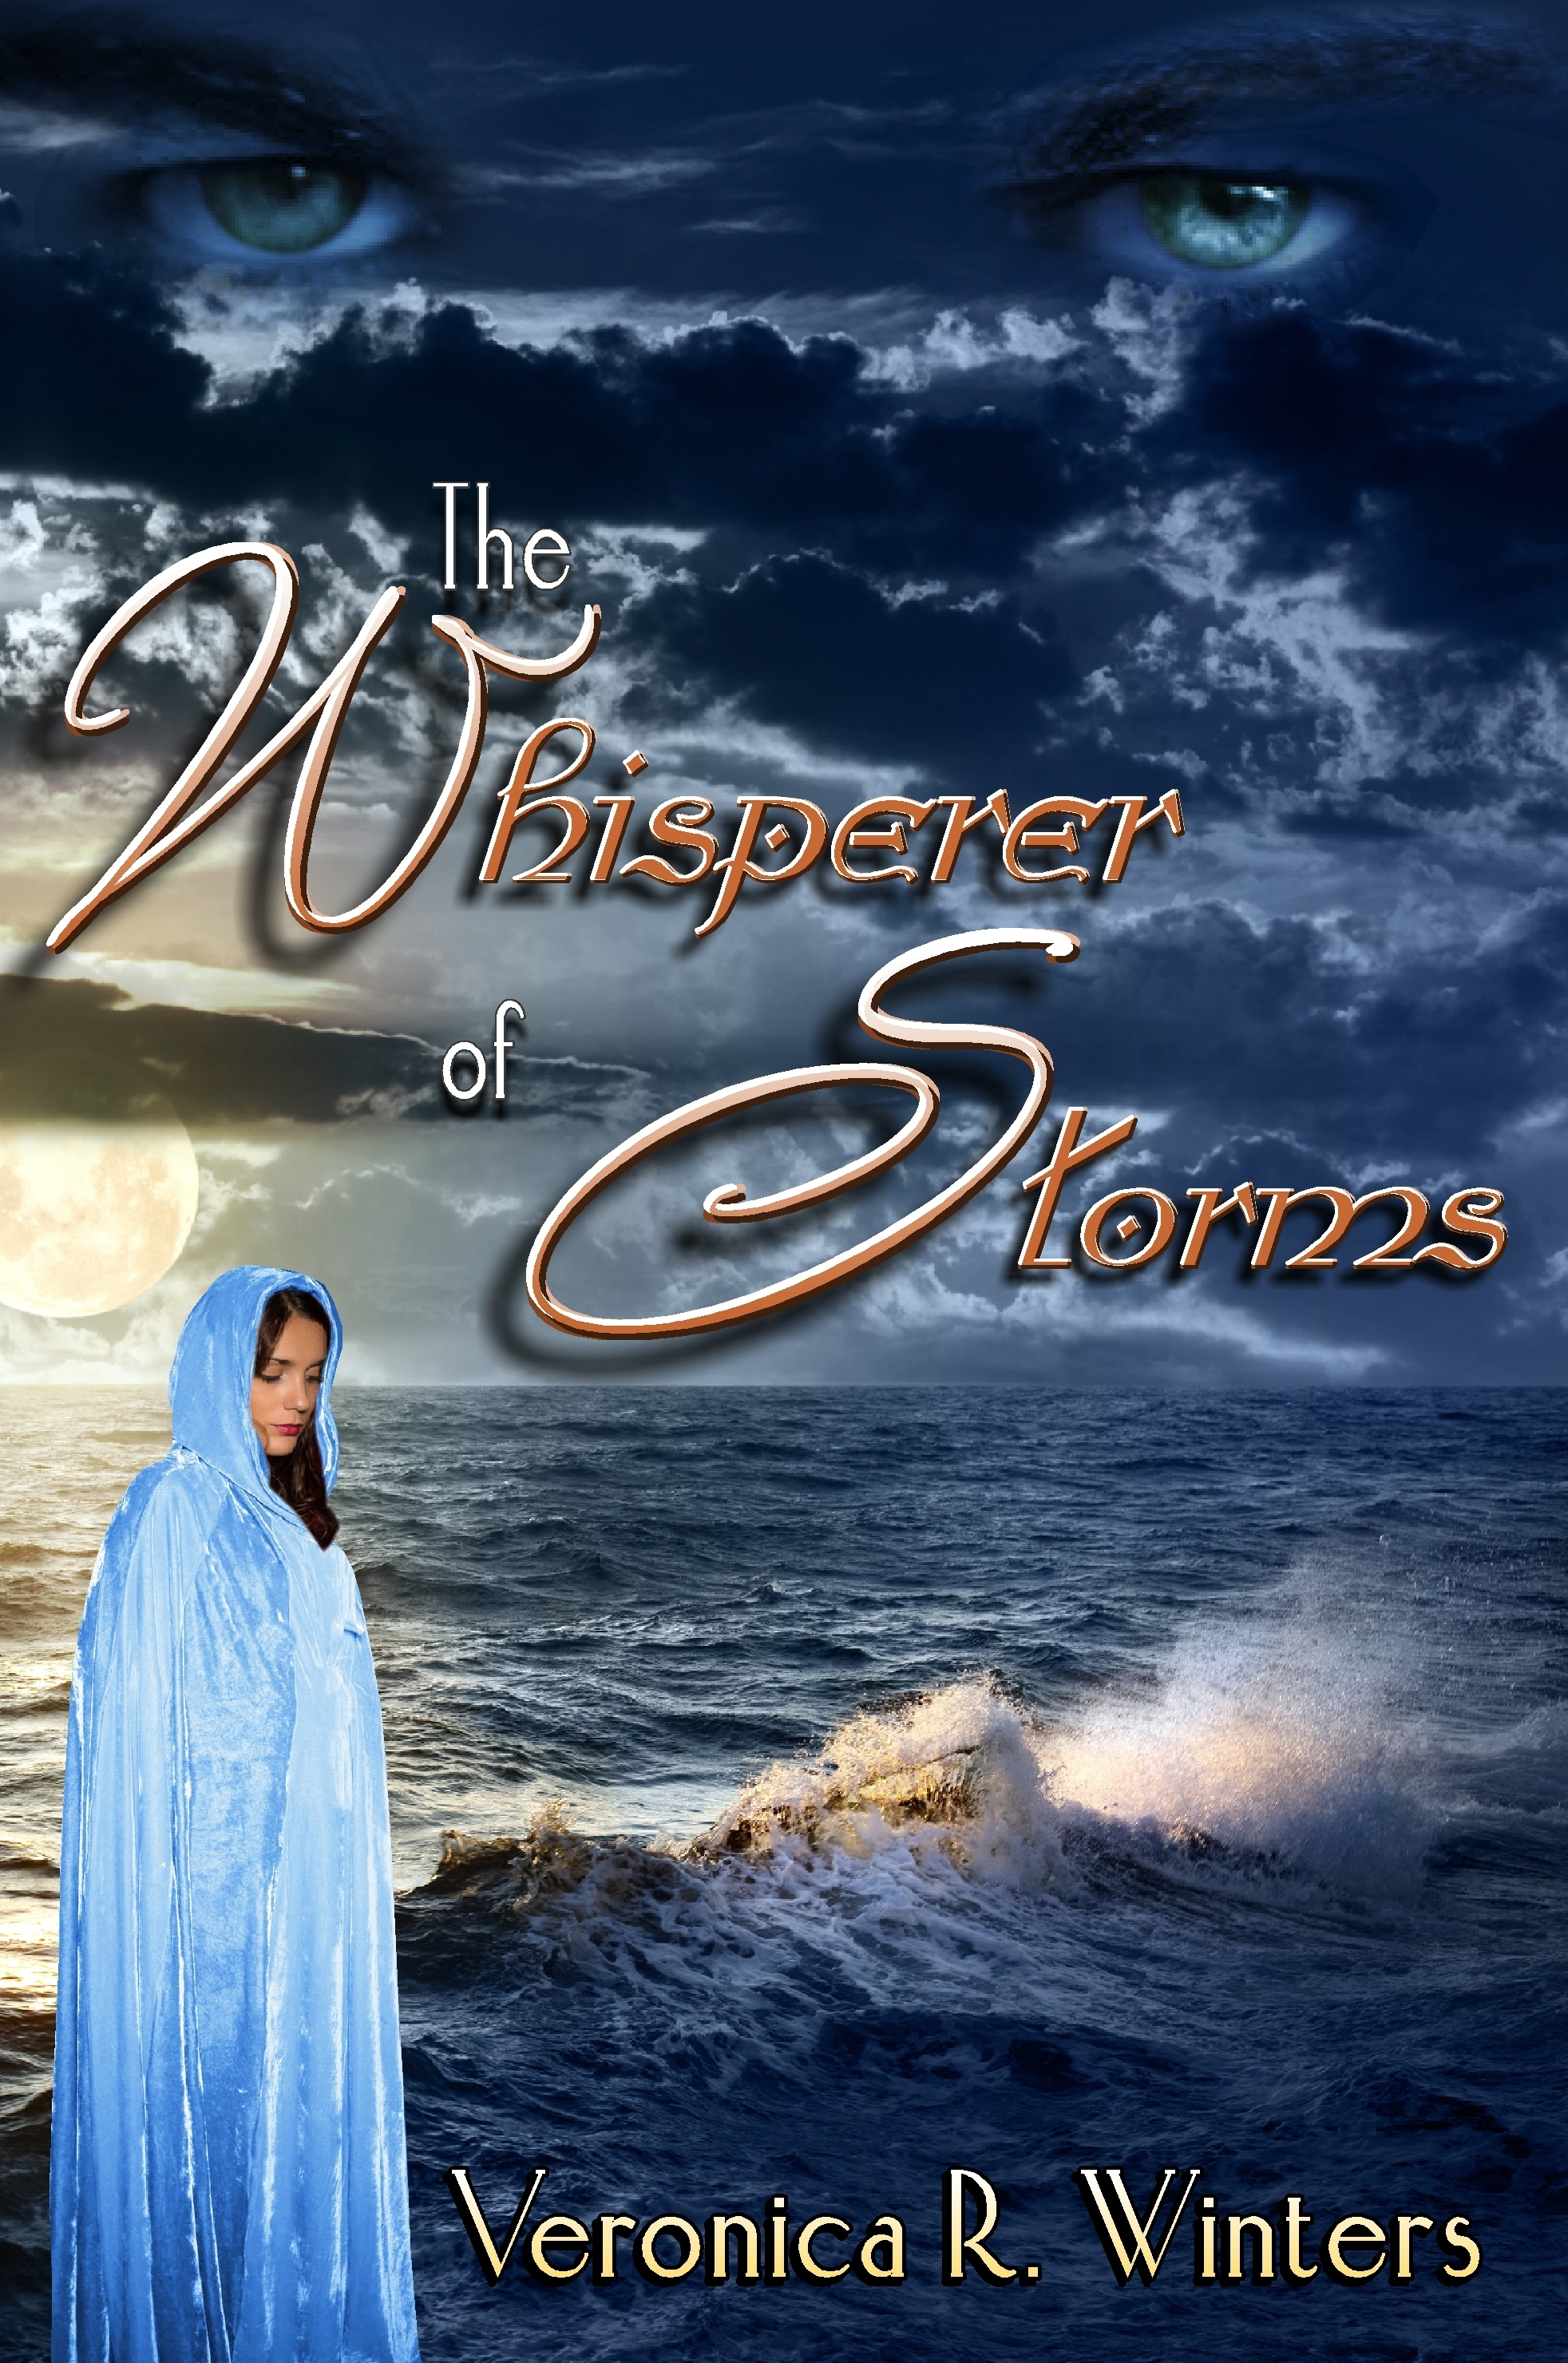 The Whisperer of Storms Veronica R. Winters